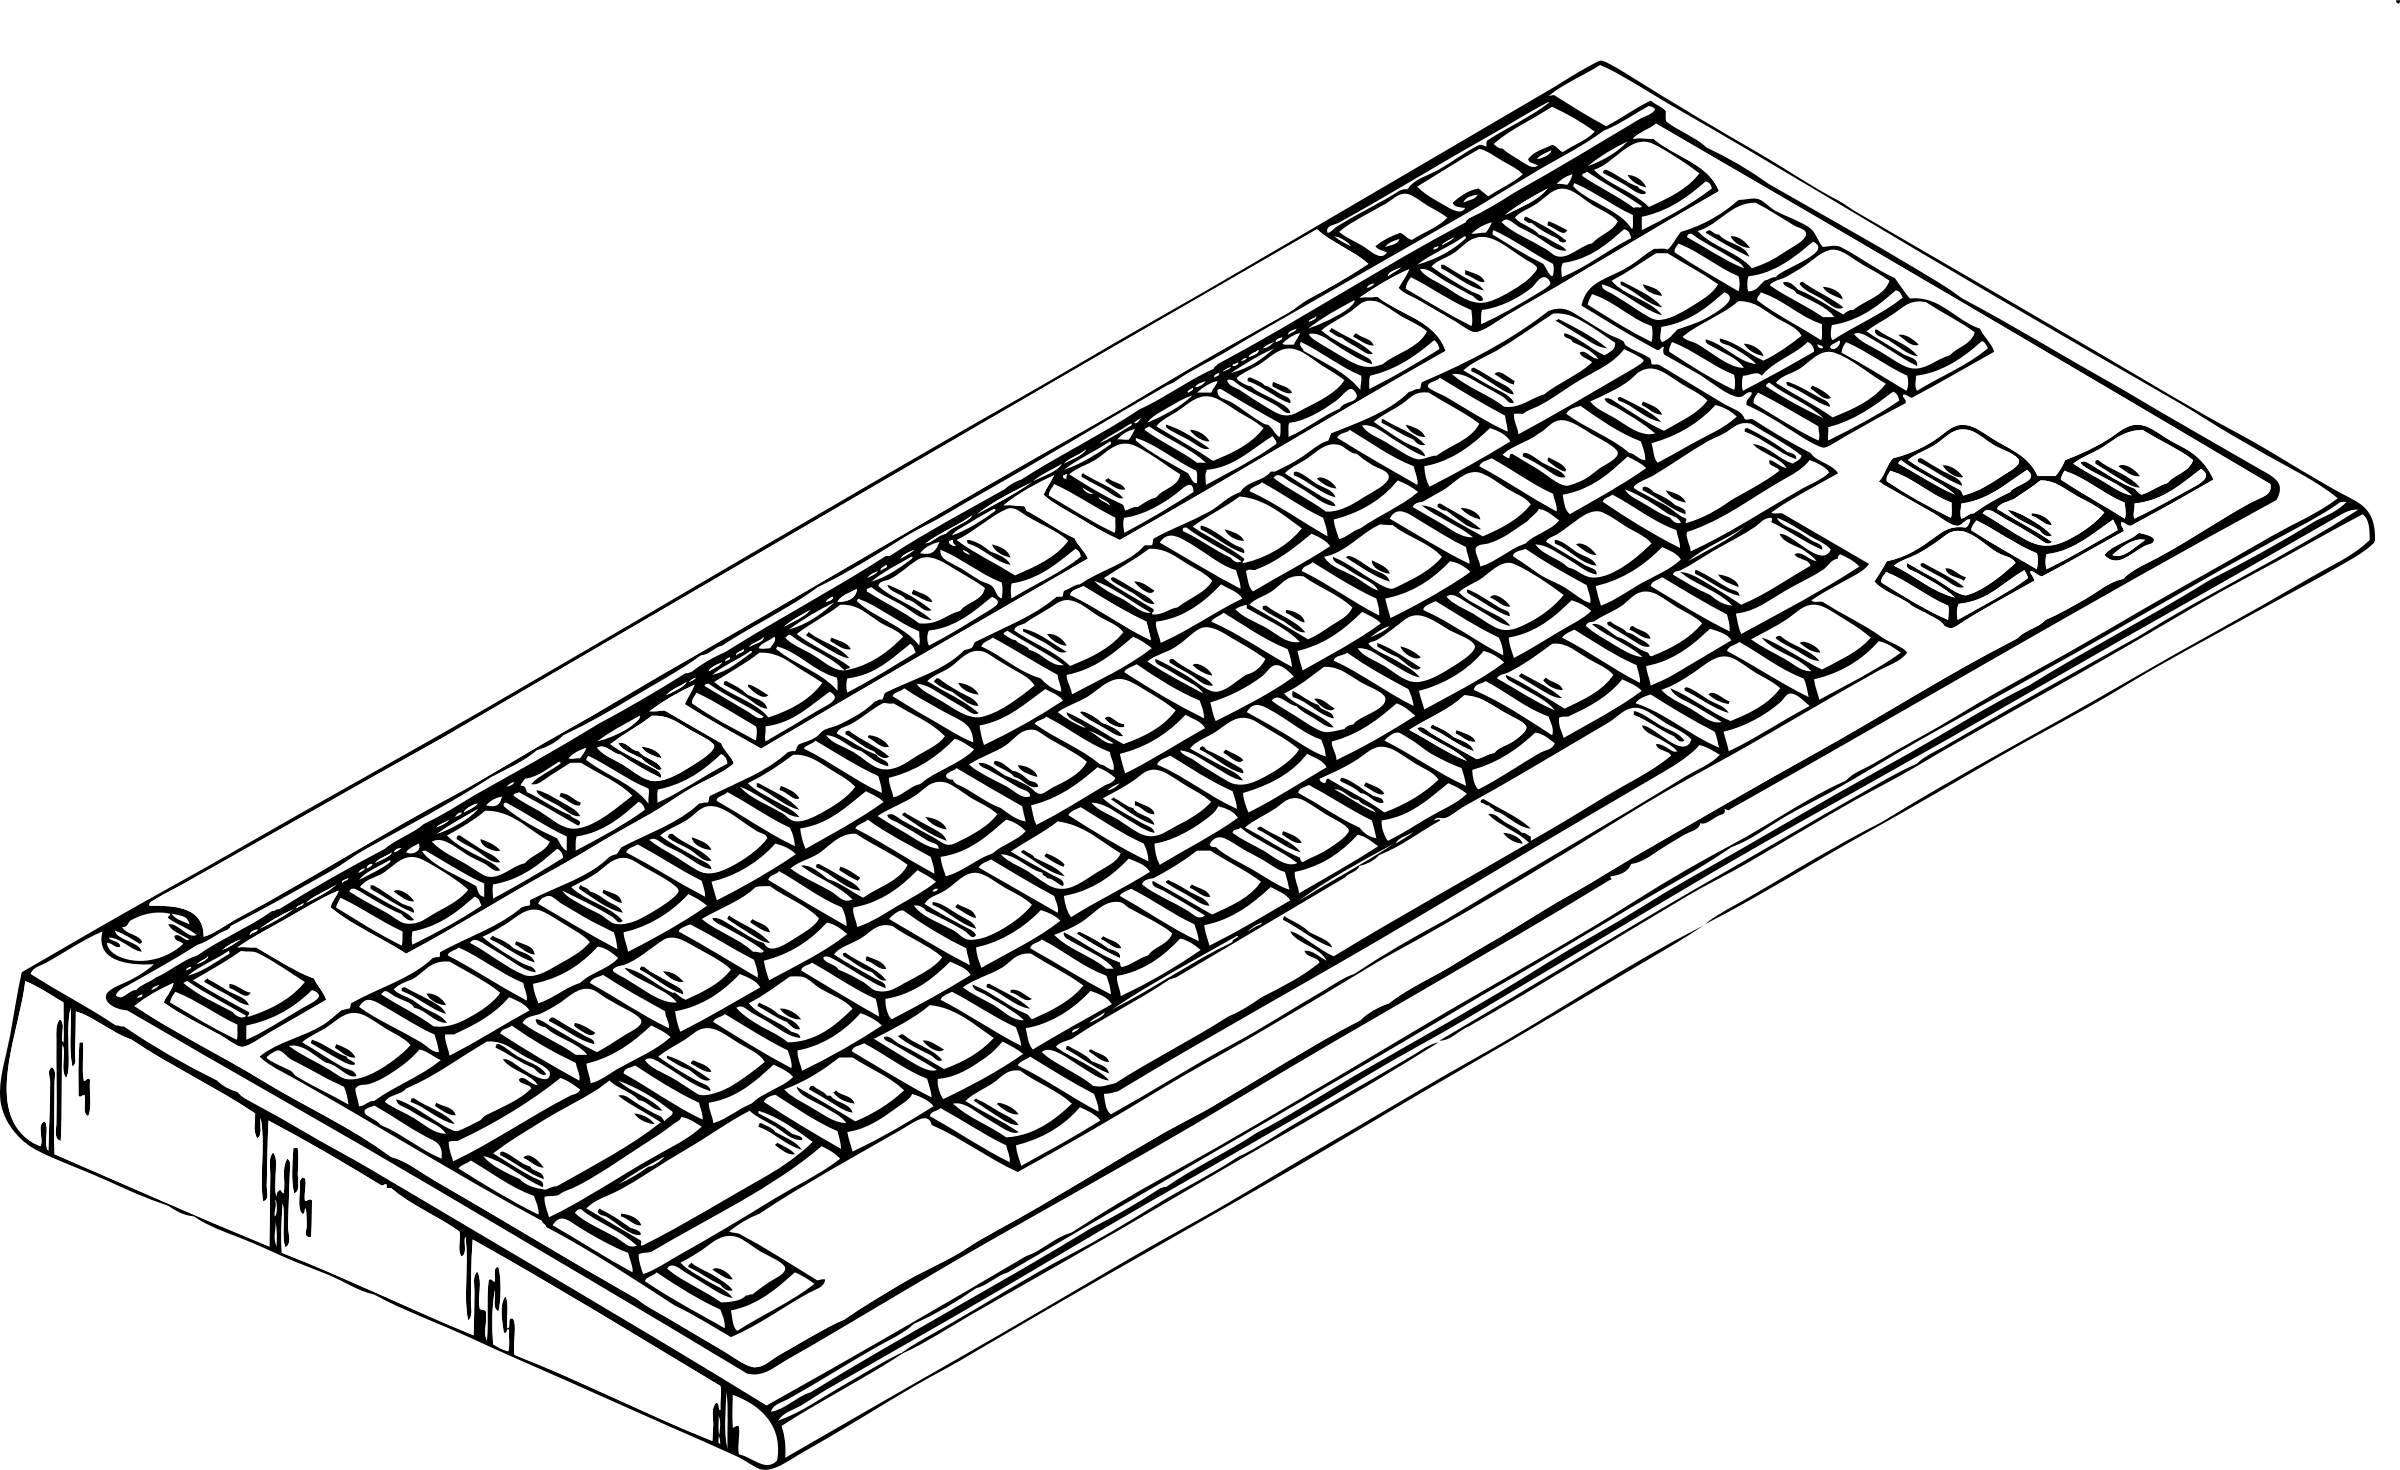 computer keyboard 2 by johnny_automatic